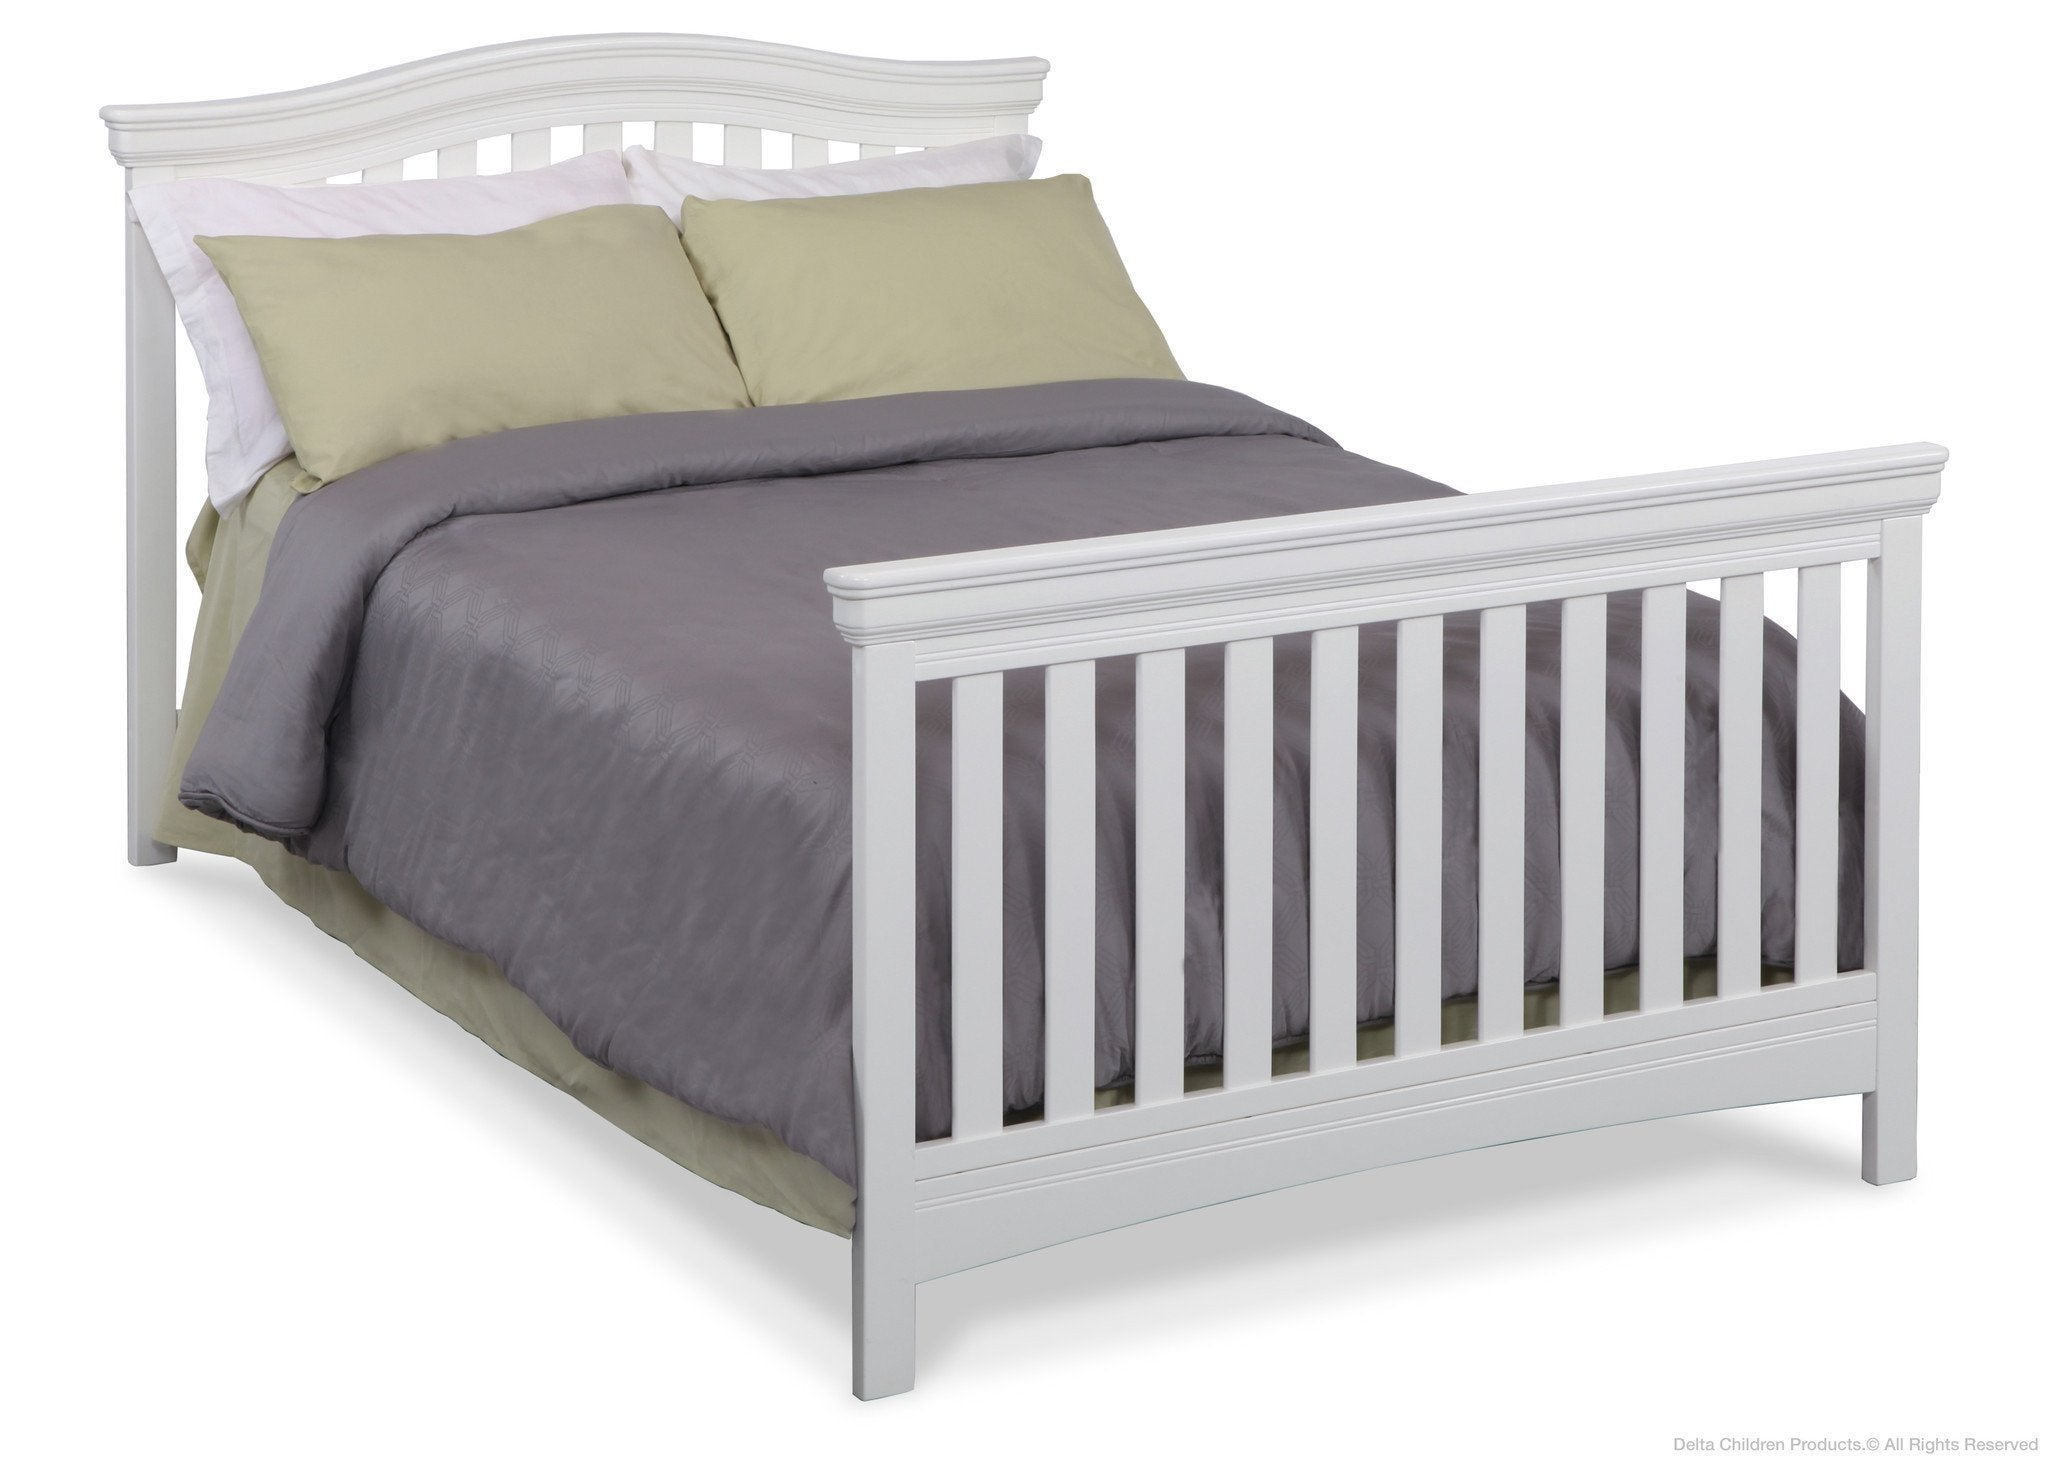 Delta Children White Ambiance (108) Bennington Curved 4-in-1 Crib Full Bed Conversion a5a